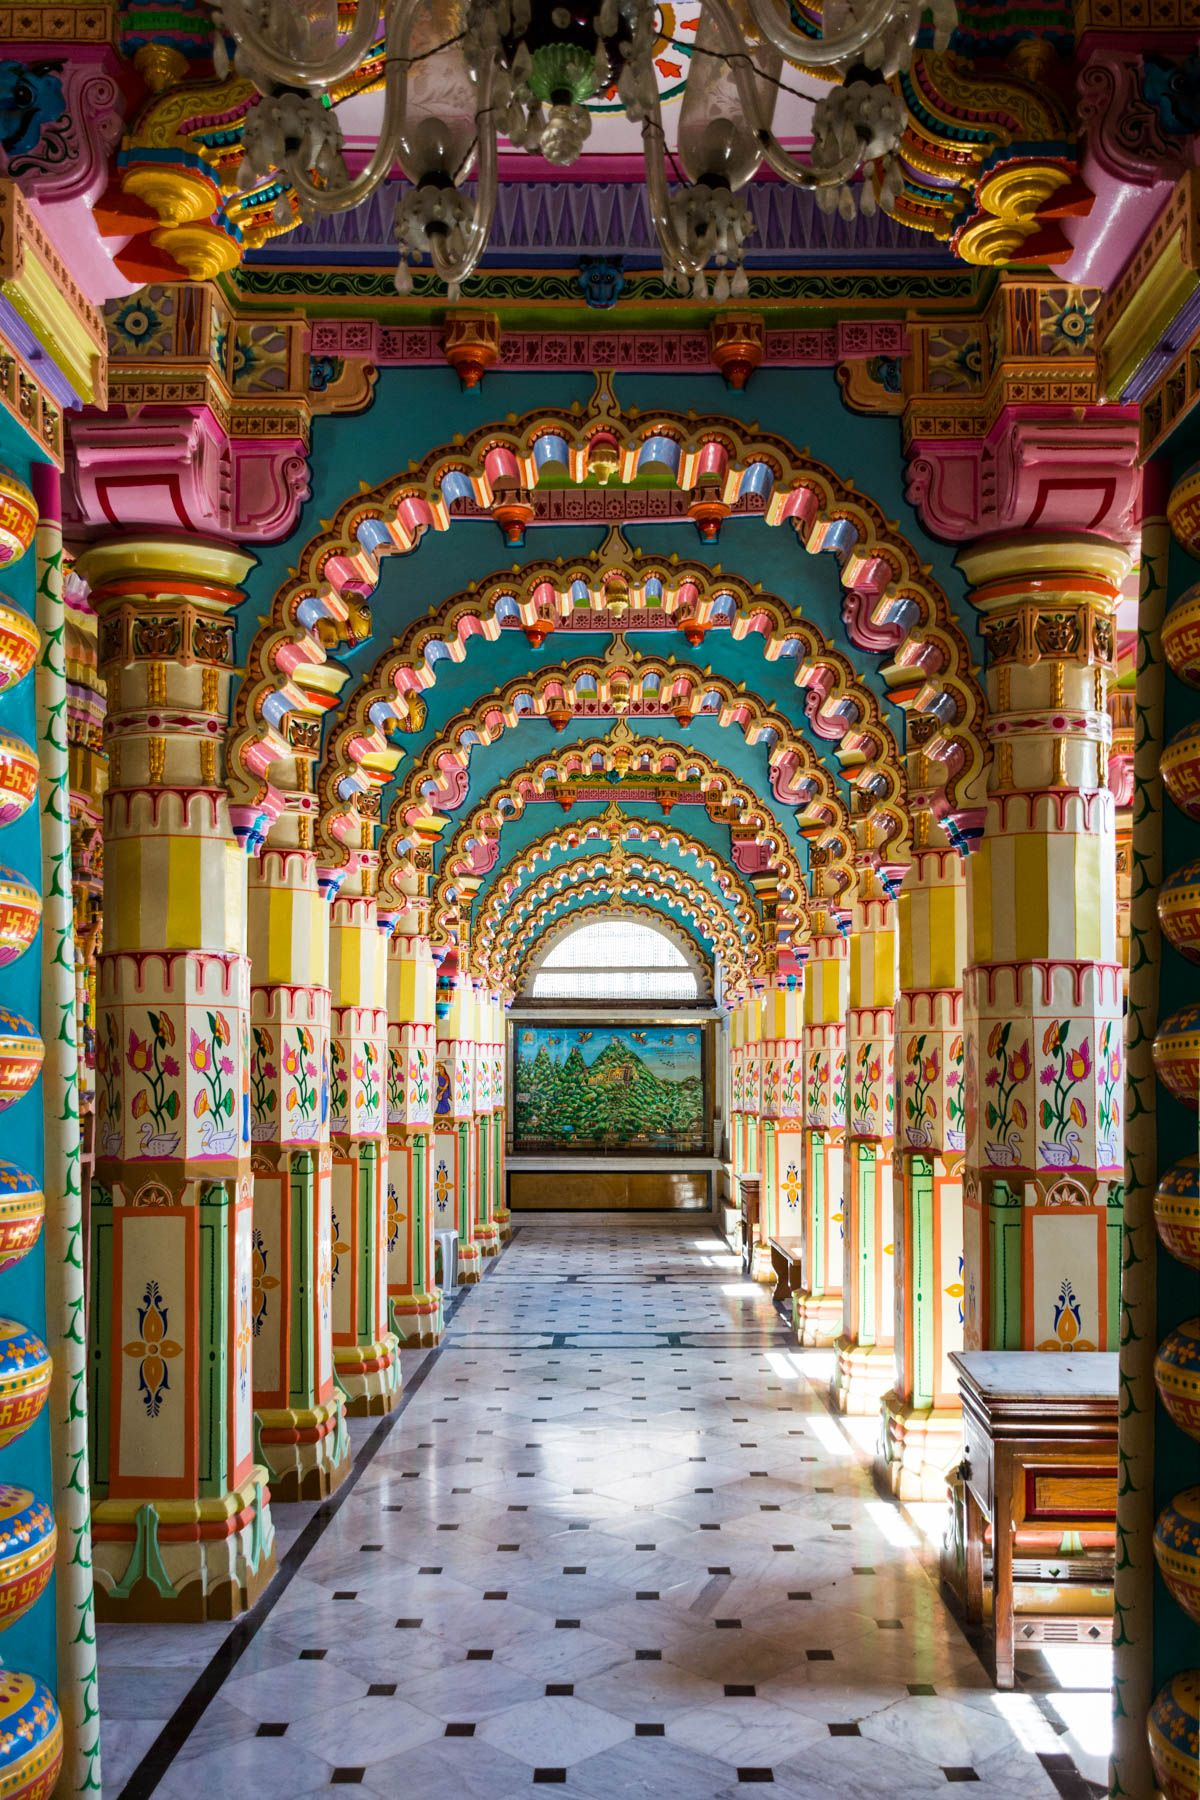 Colorful rainbow archways in the interior of Shantinath